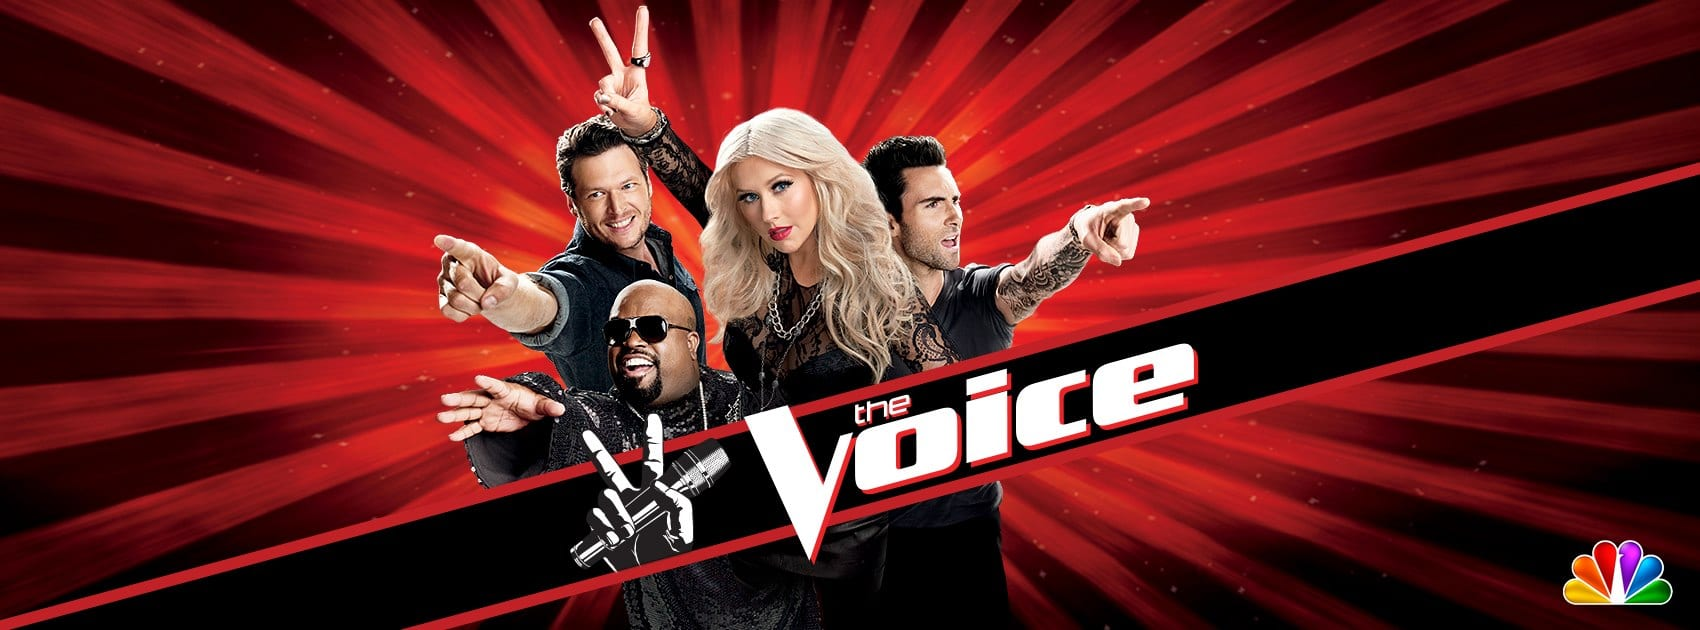 Best Country Songs, The Voice